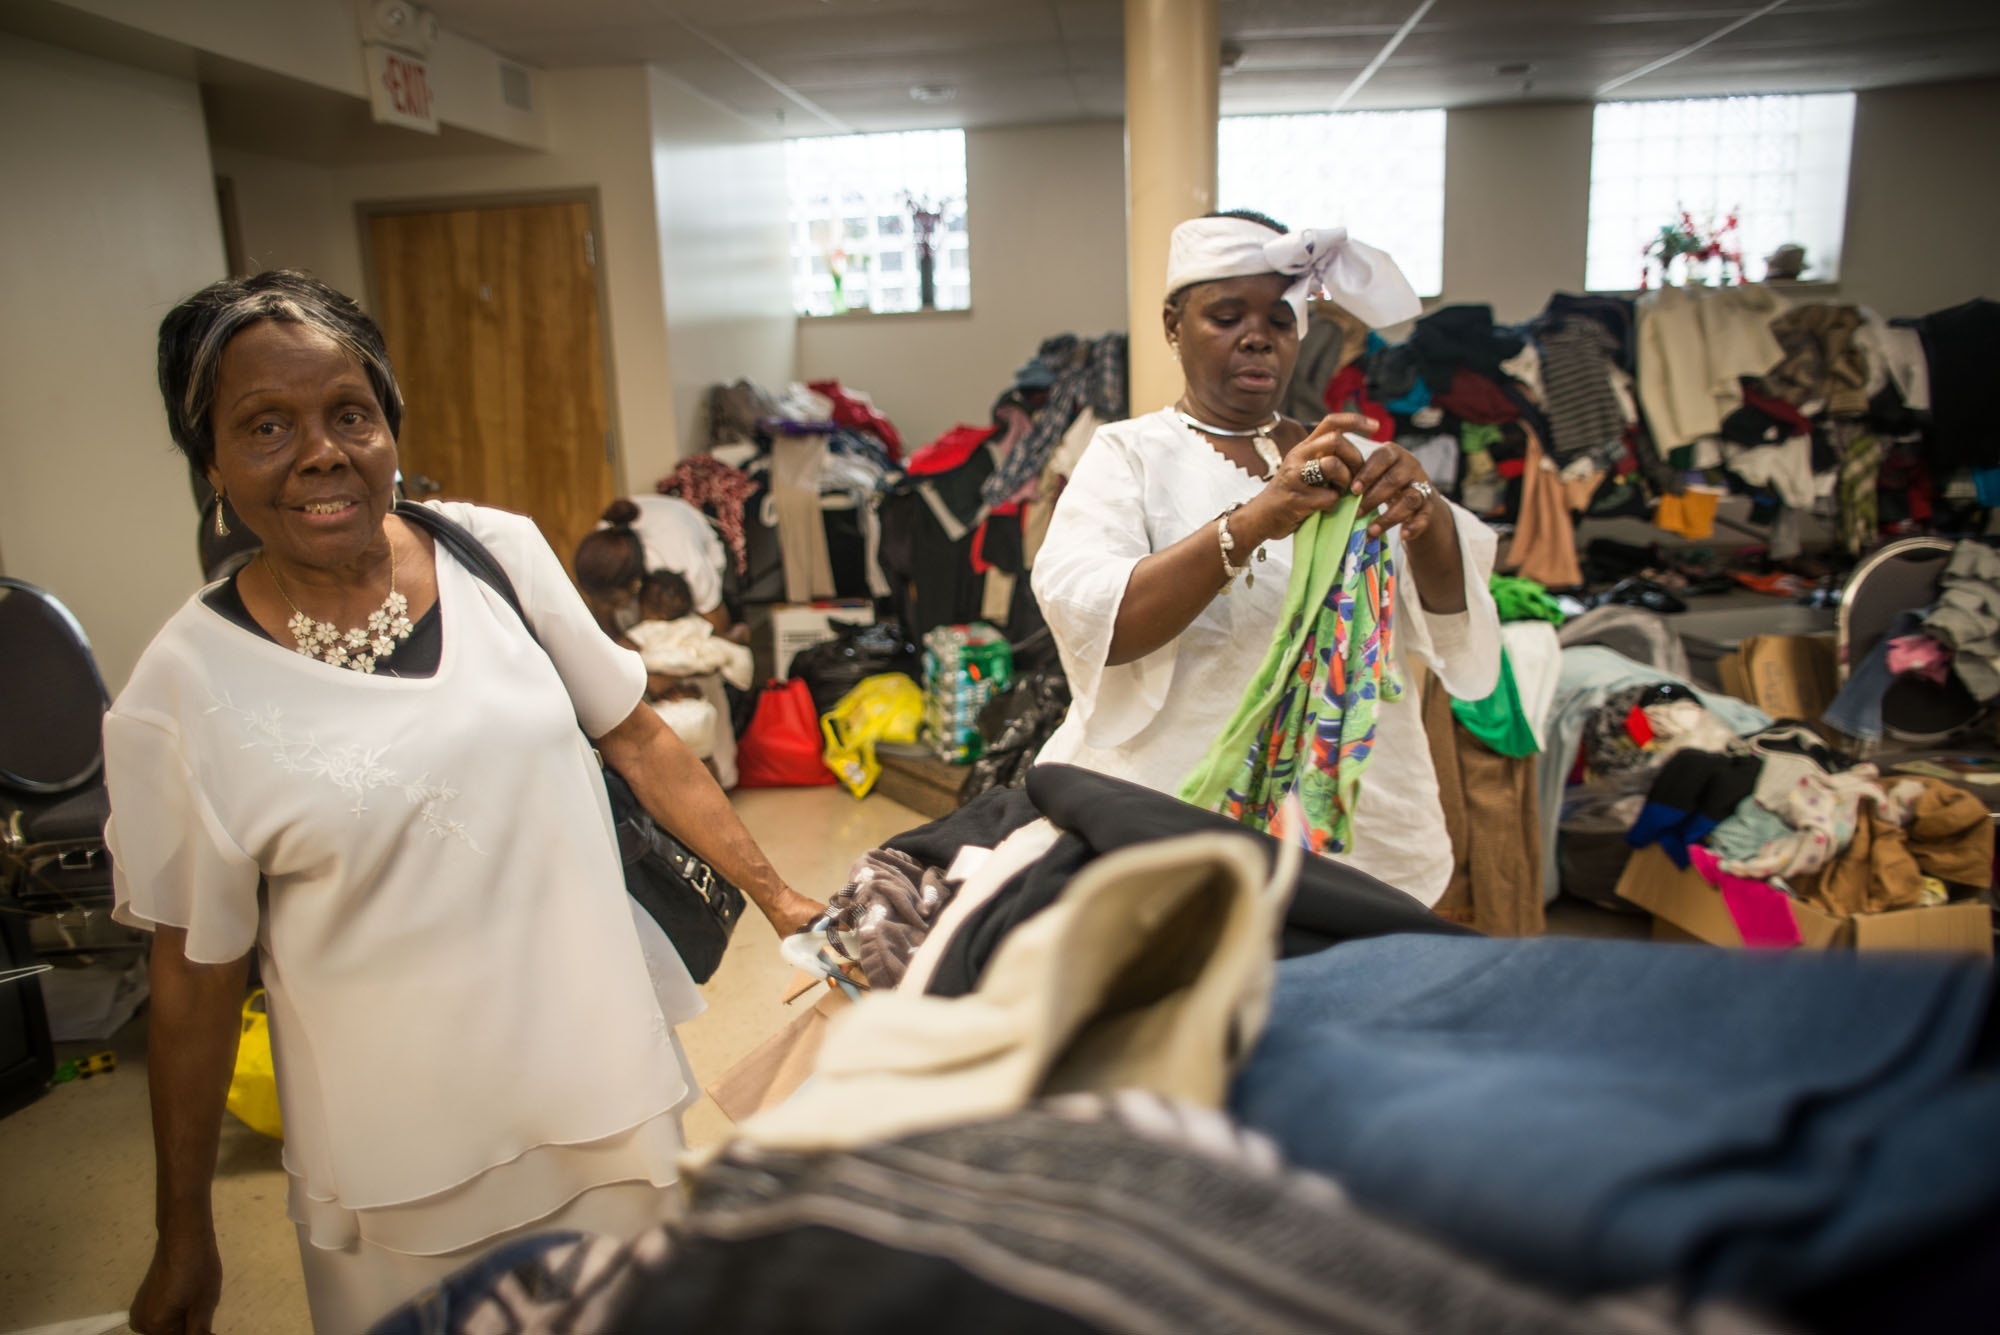 Diana Walker (left) and Roselyn Gray (right) help sort out the donations before they go to the fire victims from las week's fire